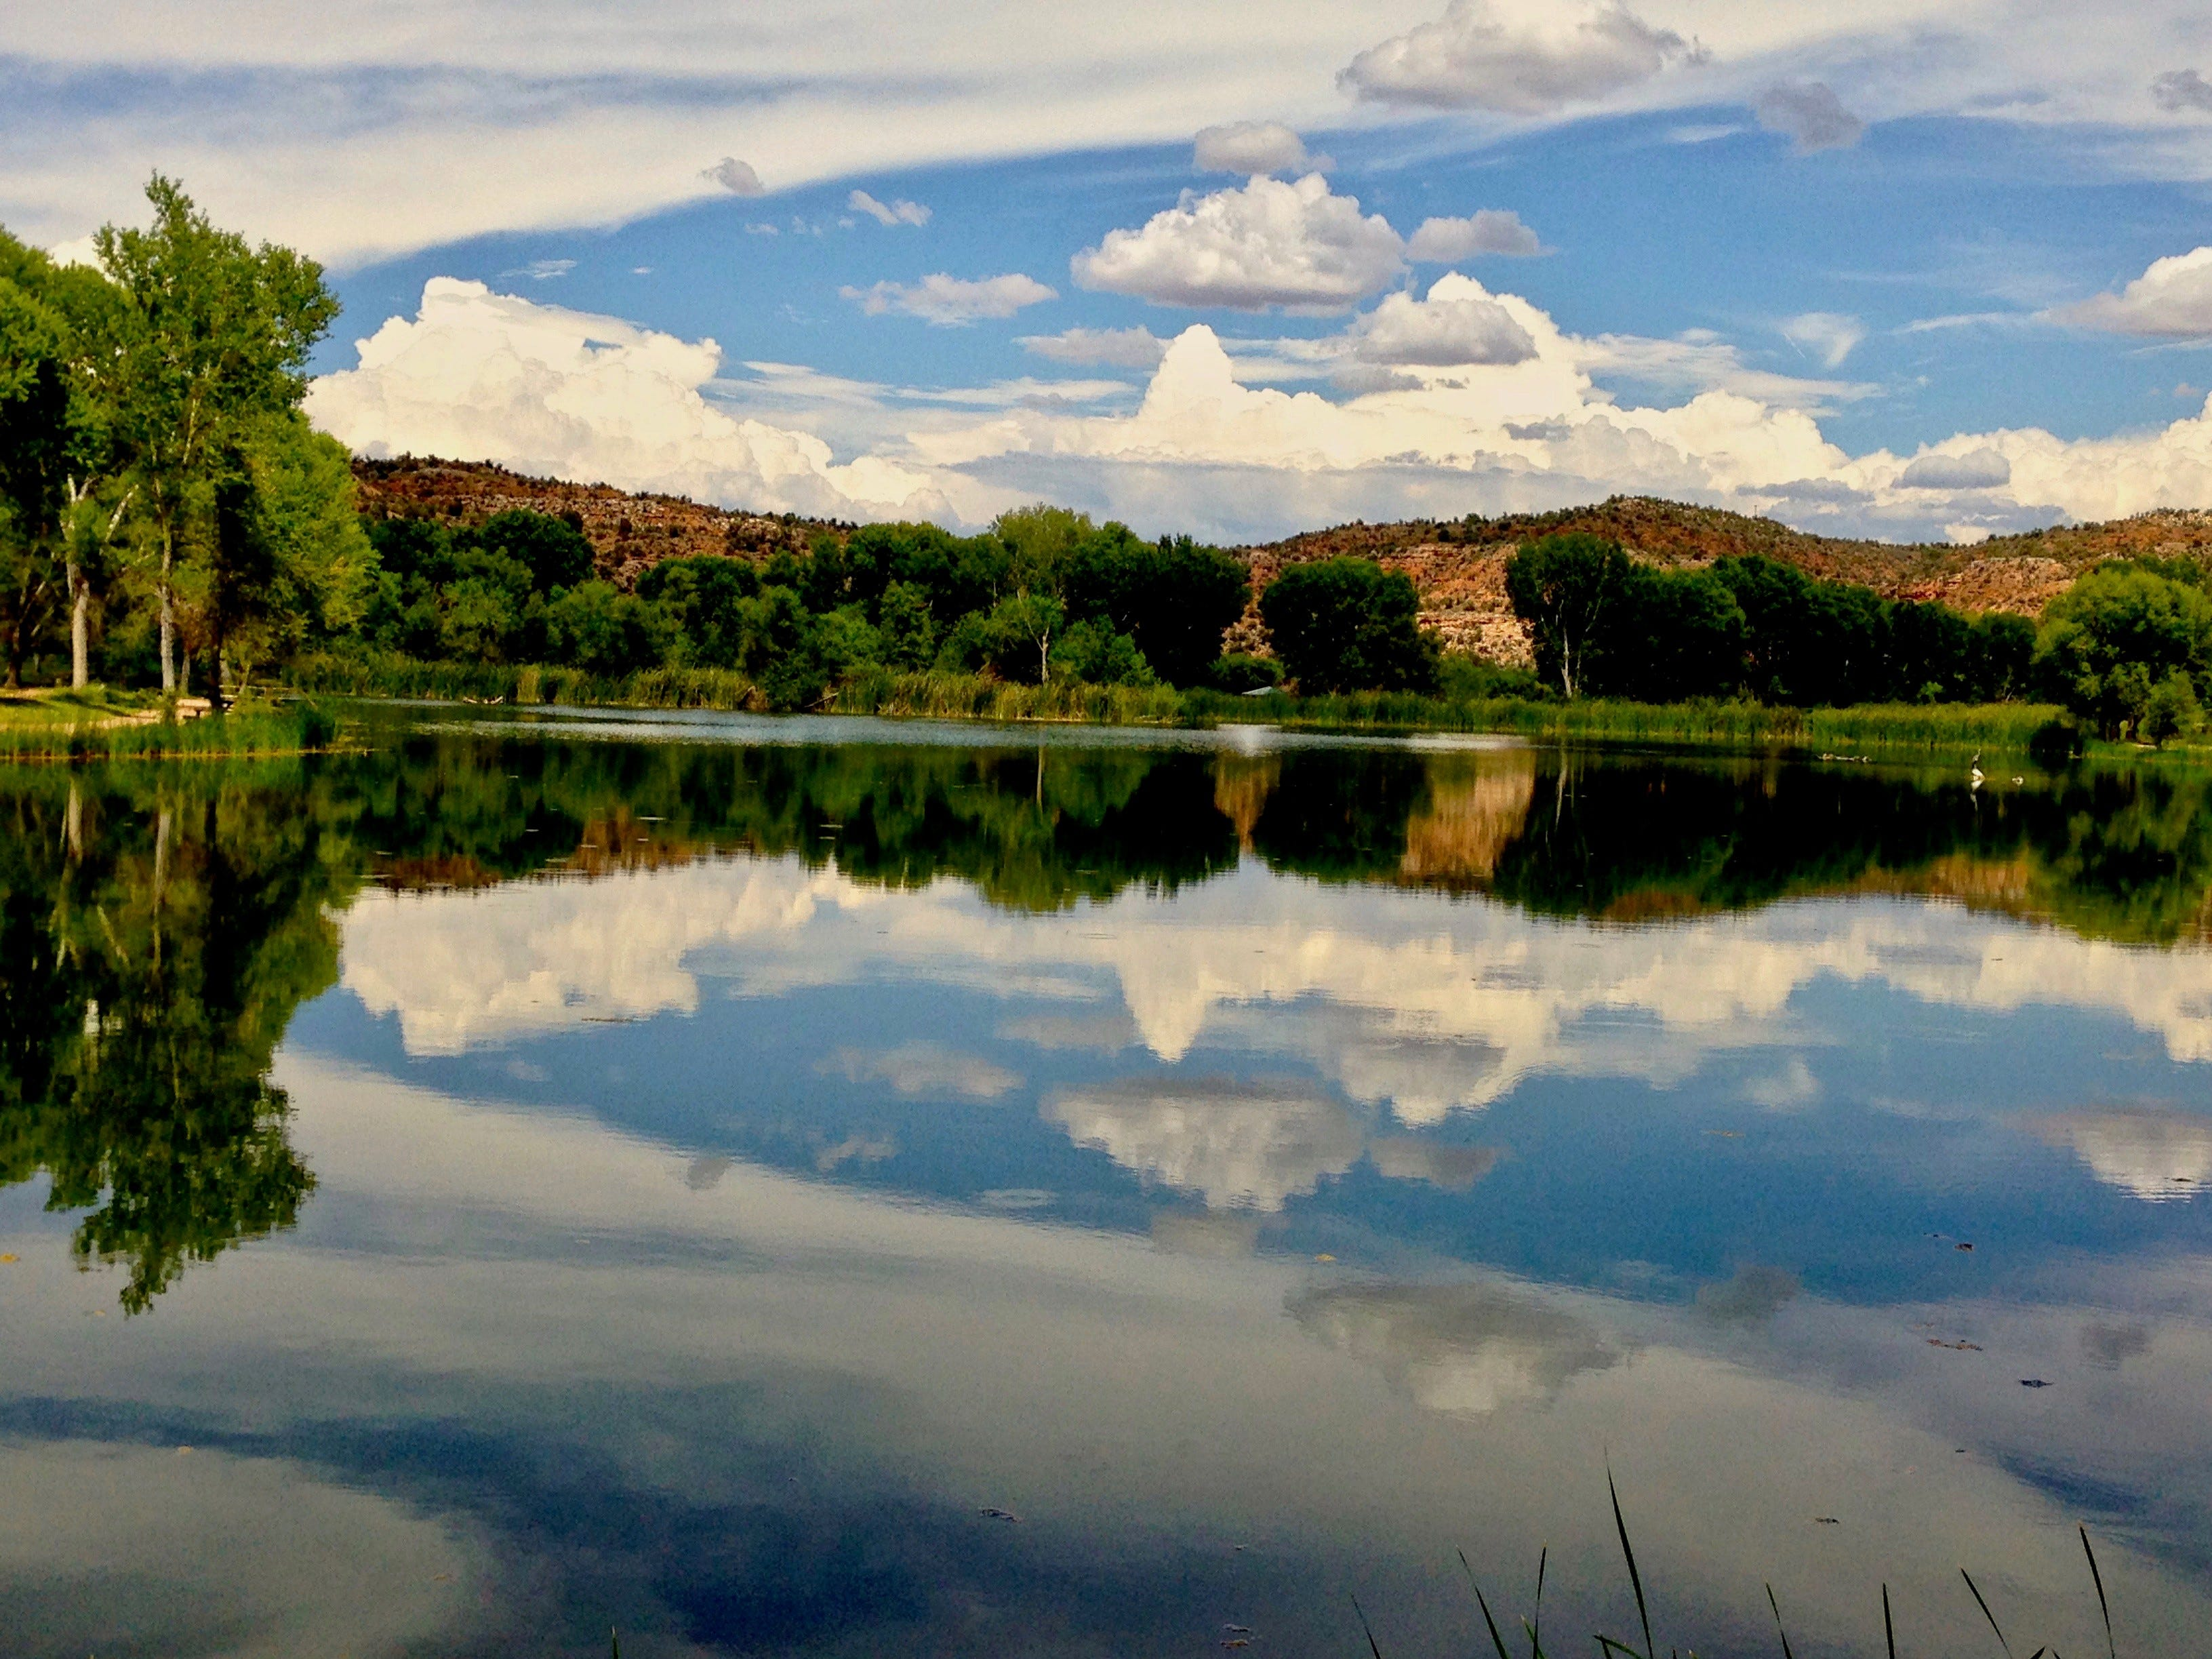 Dead Horse Ranch State Park in Cottonwood protects a stretch of Verde River, a handful of lagoons and a network of hiking and biking trails.